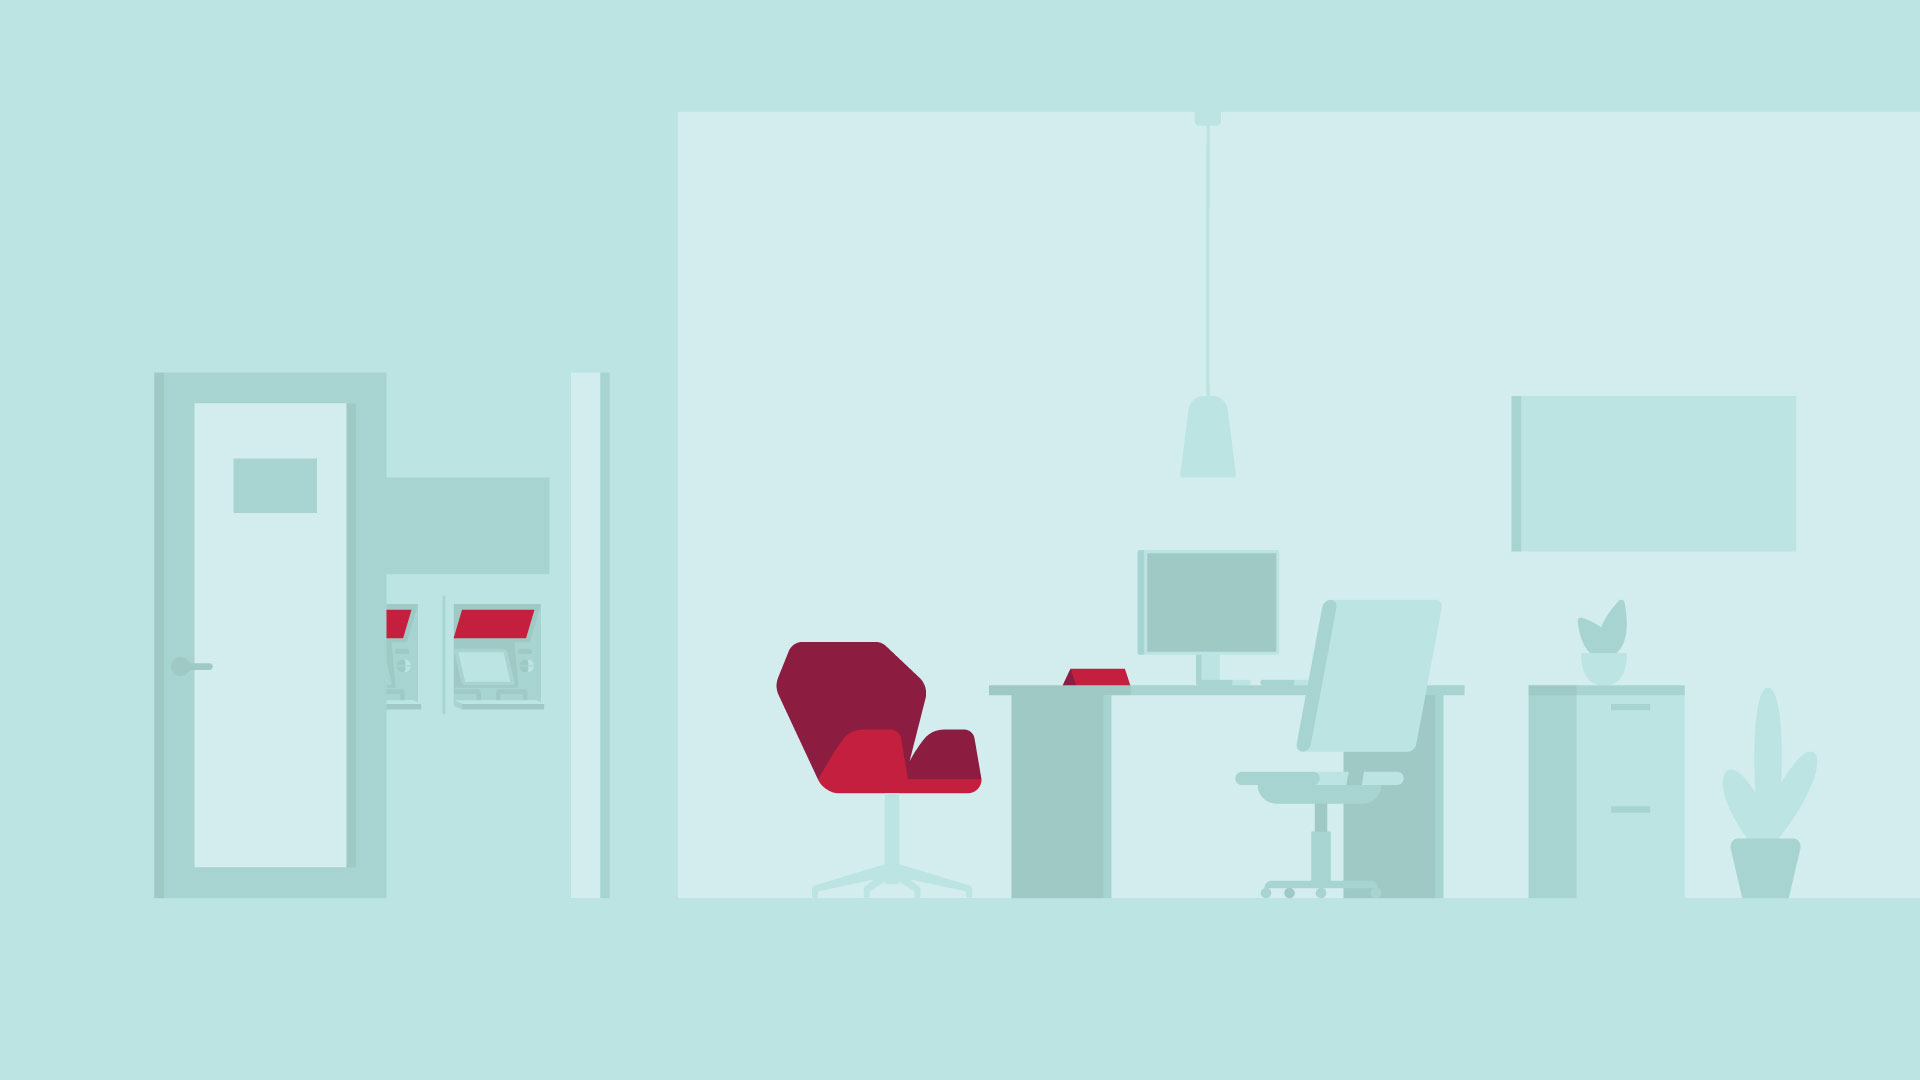 Vector illustration of a bank's manager office for the CIBC communications